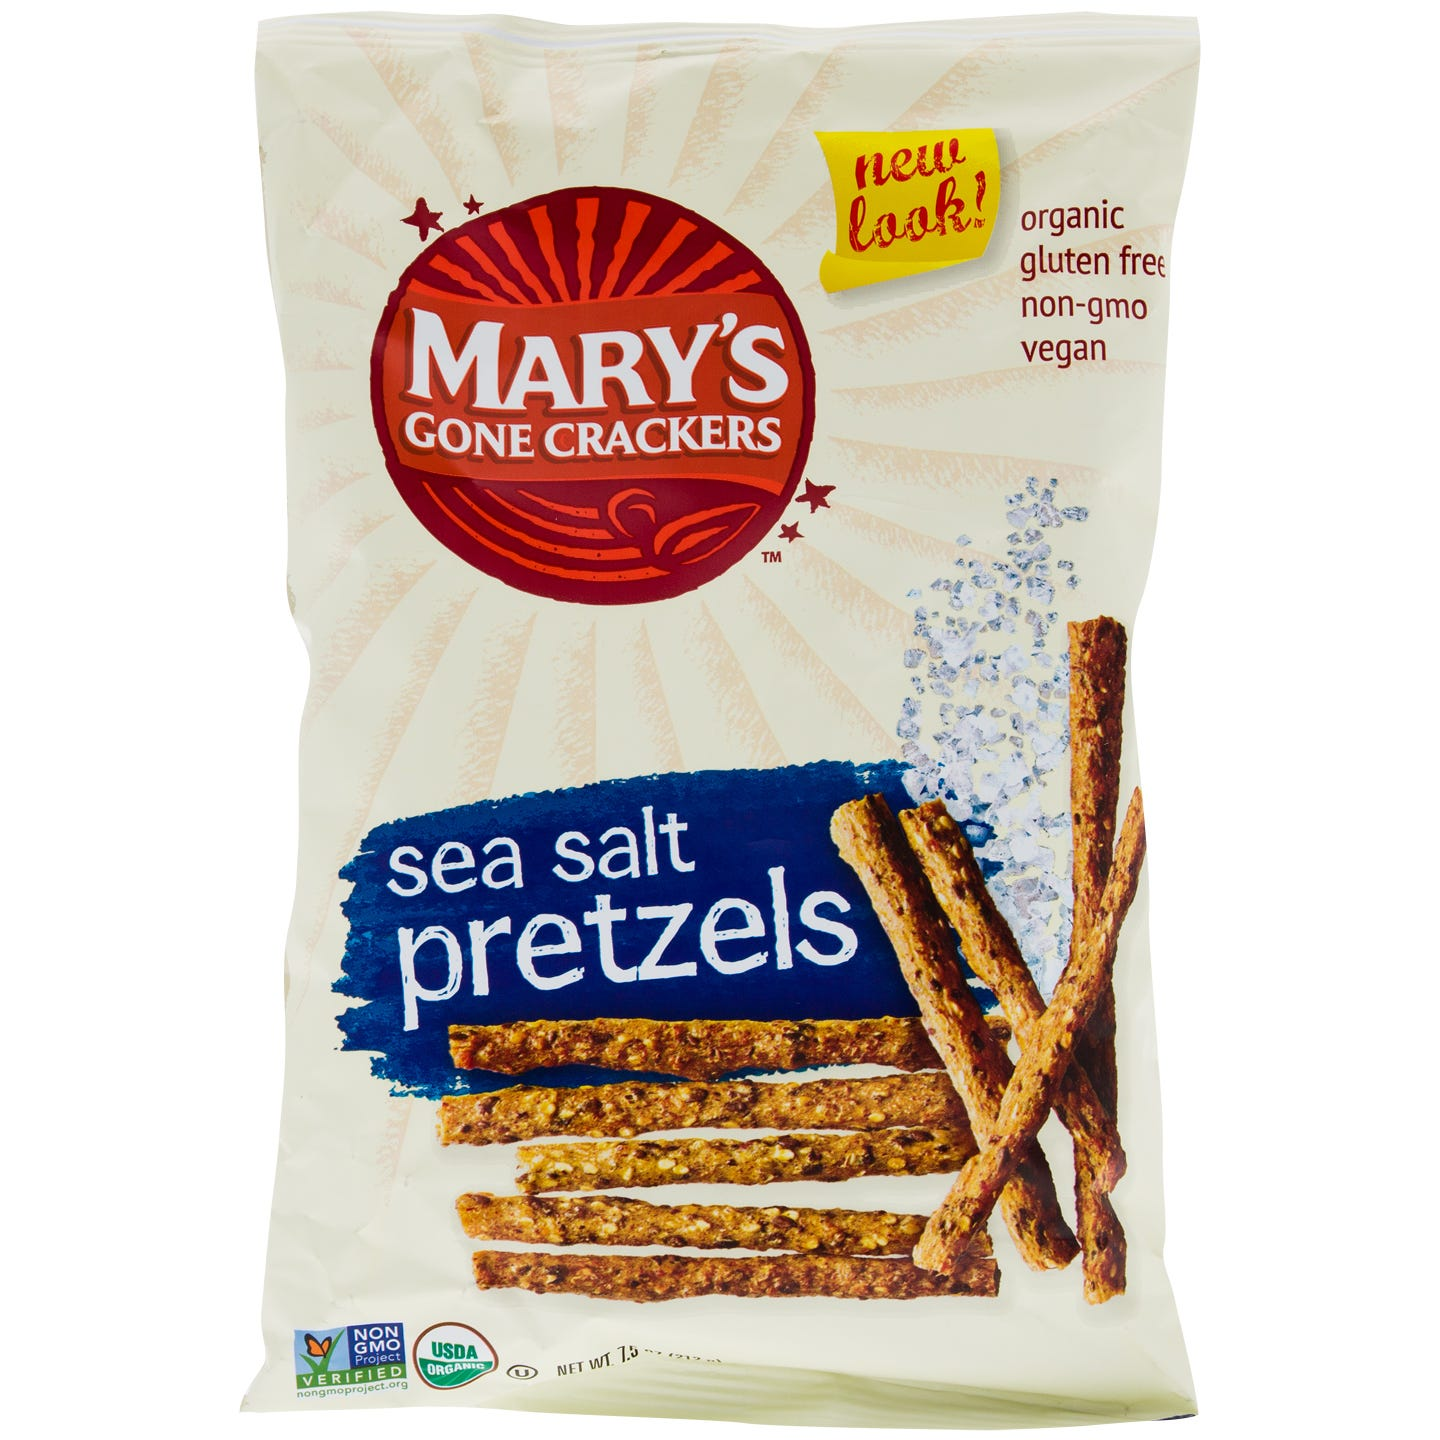 Gluten Free Pretzels Sea Salt 7.5 oz, Mary's Gone Crackers - Rapid Diet Weight Loss Products Shop